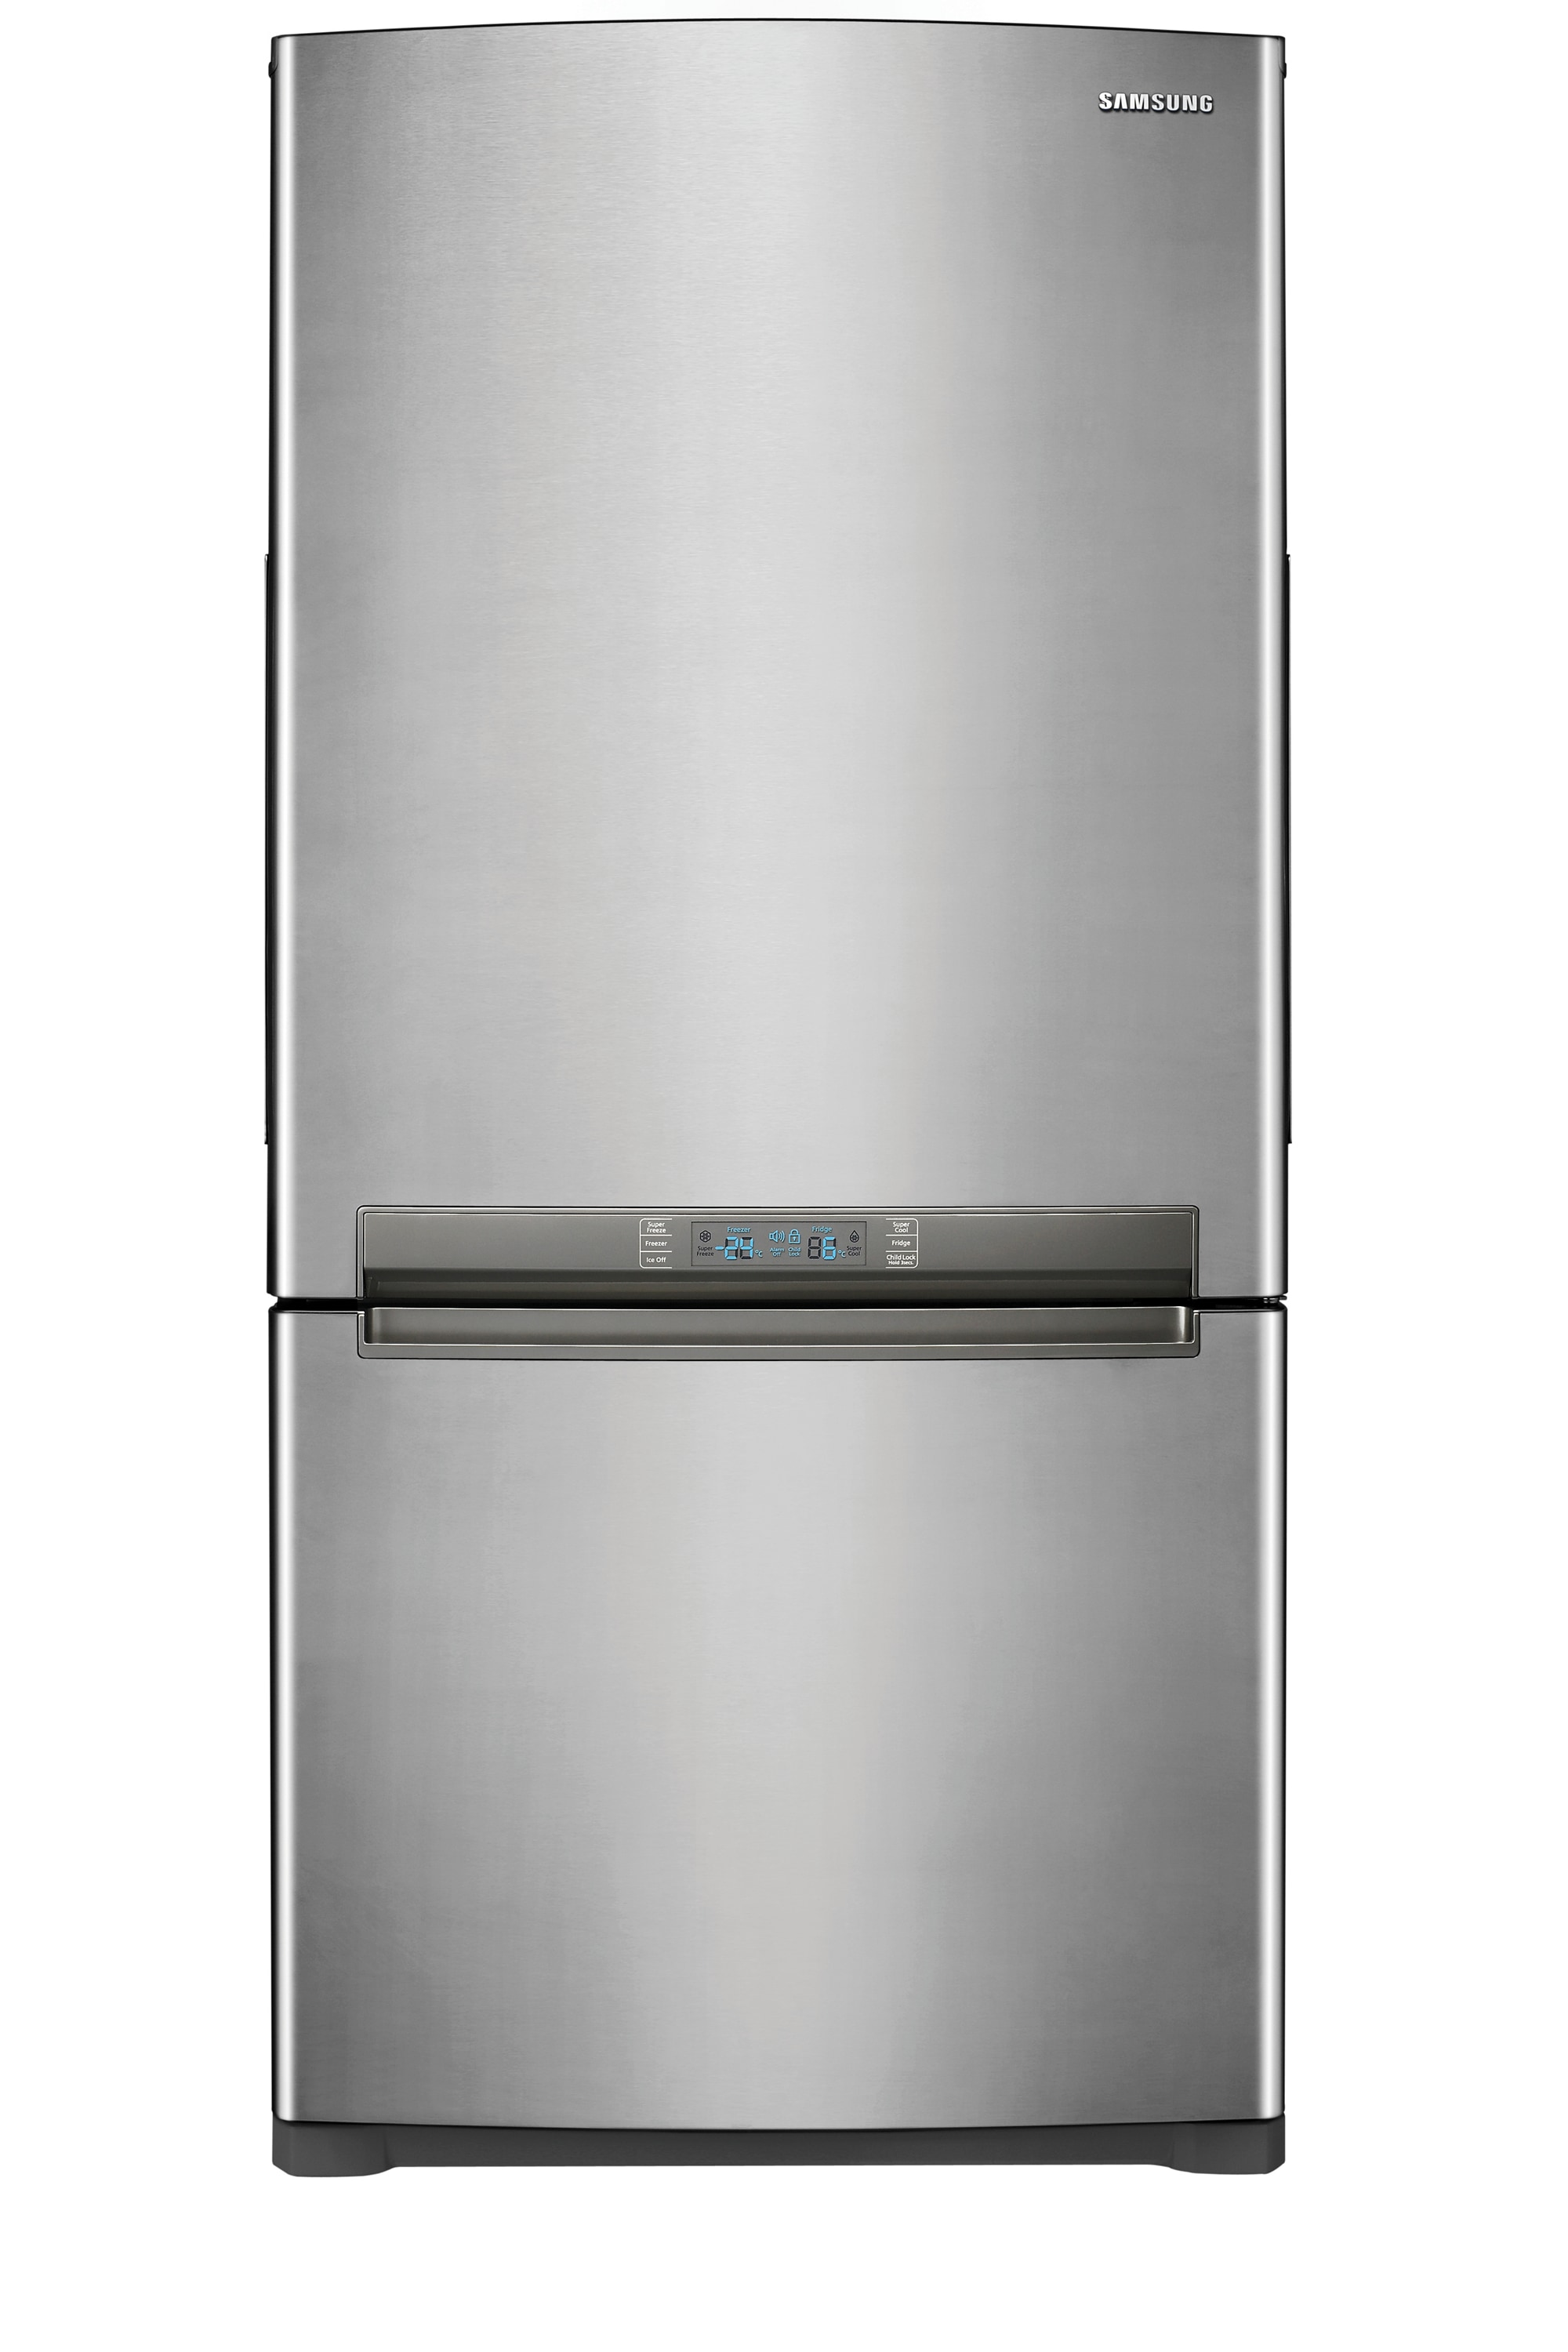 RB194ACRS 17.9 cu.ft Bottom Mount Freezer Refrigerator Stainless Steel